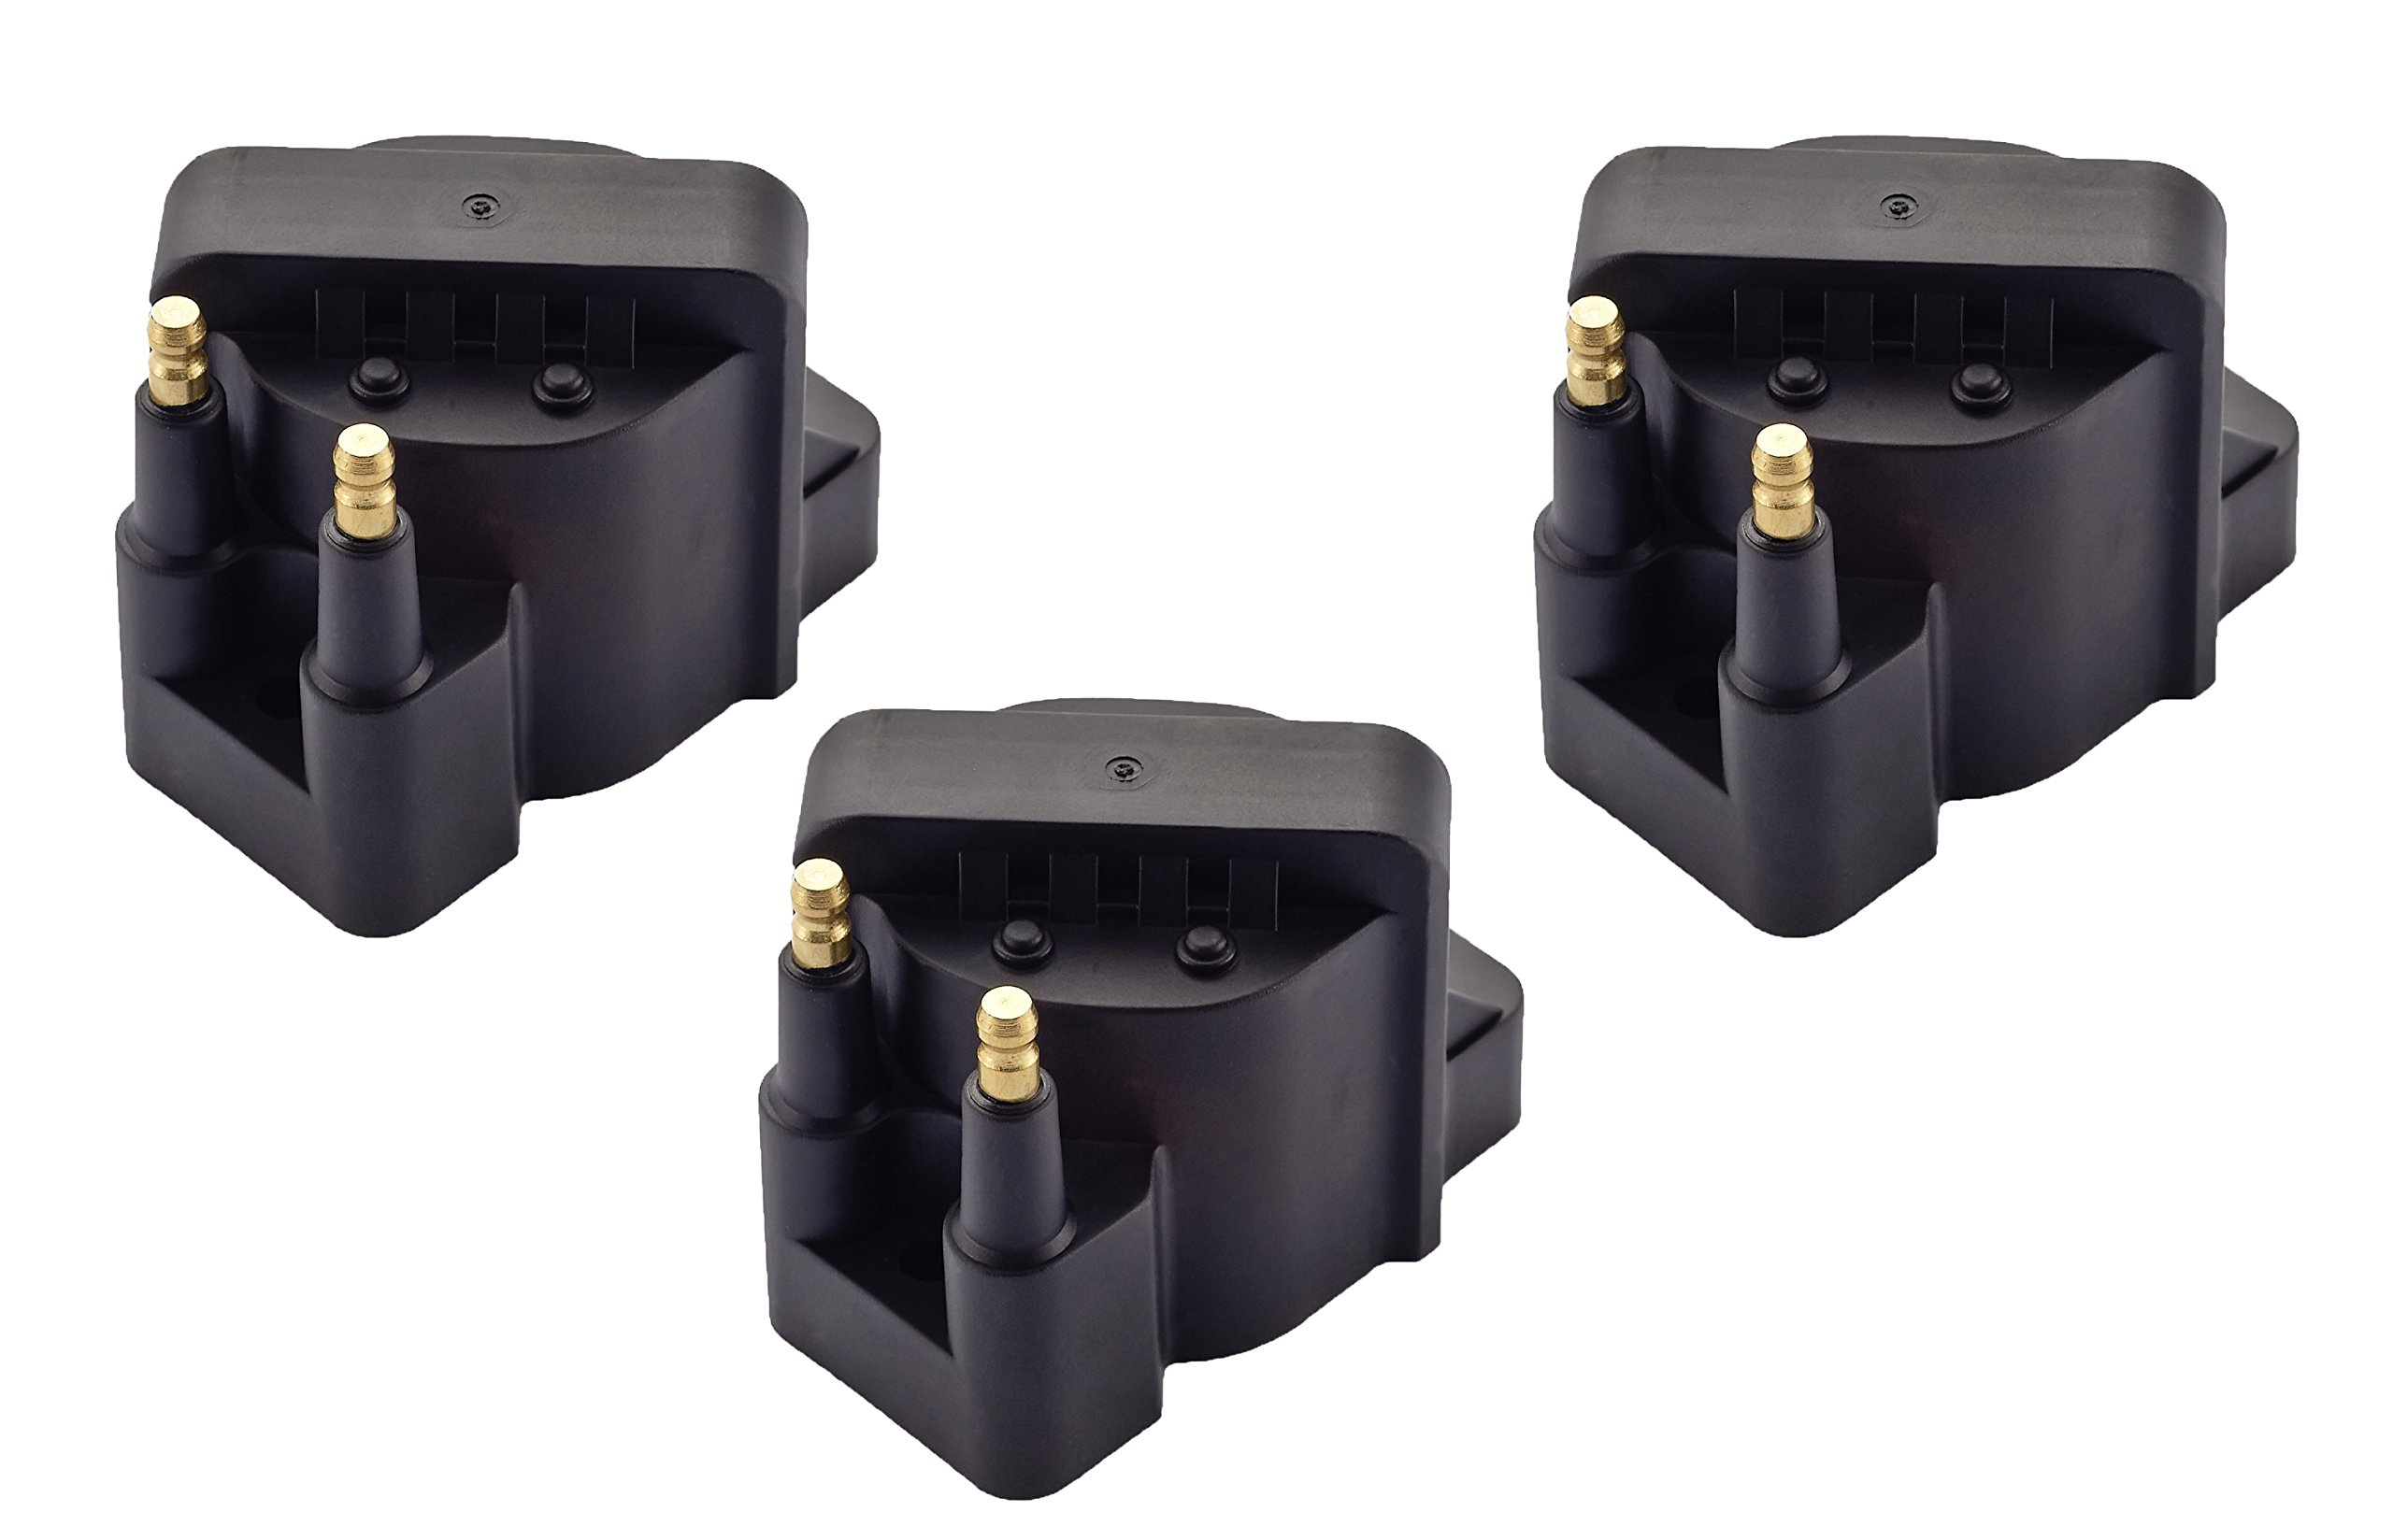 Pack of 3 Ignition Coil Pack for Buick Cadillac Chevrolet Oldsmobile Pontiac Compatible with C849 DR39